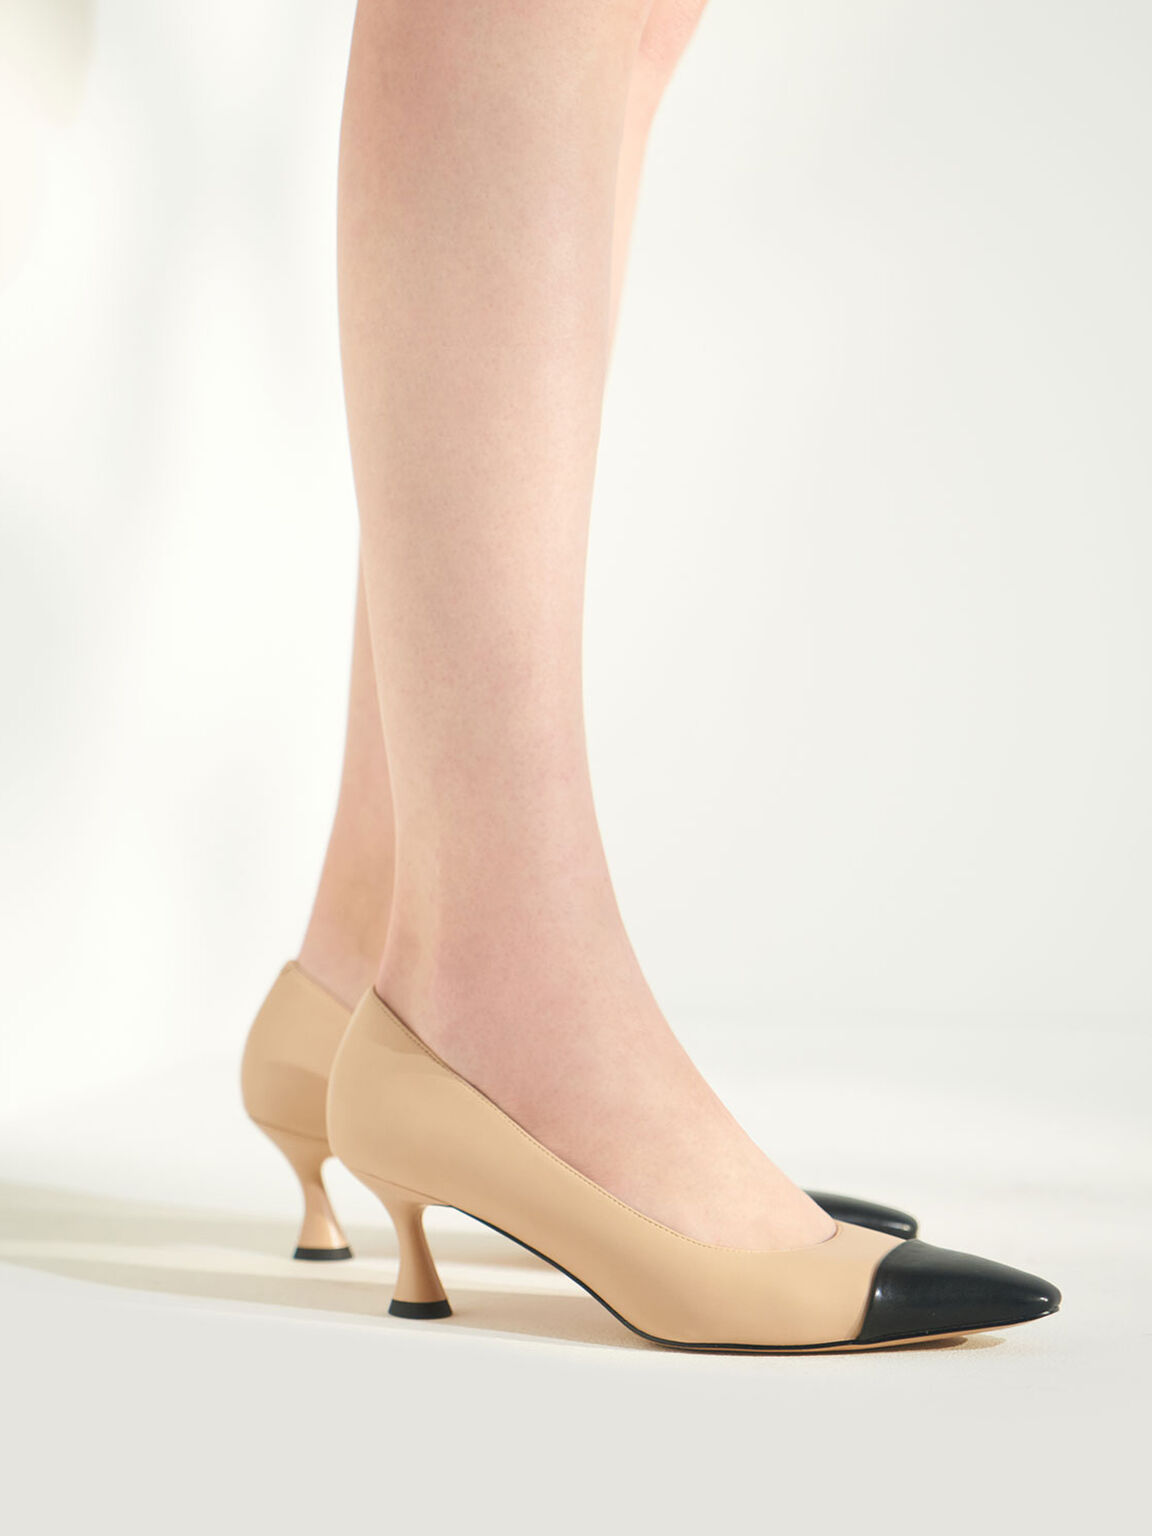 Spool Heel Toe Cap Pumps, Nude, hi-res